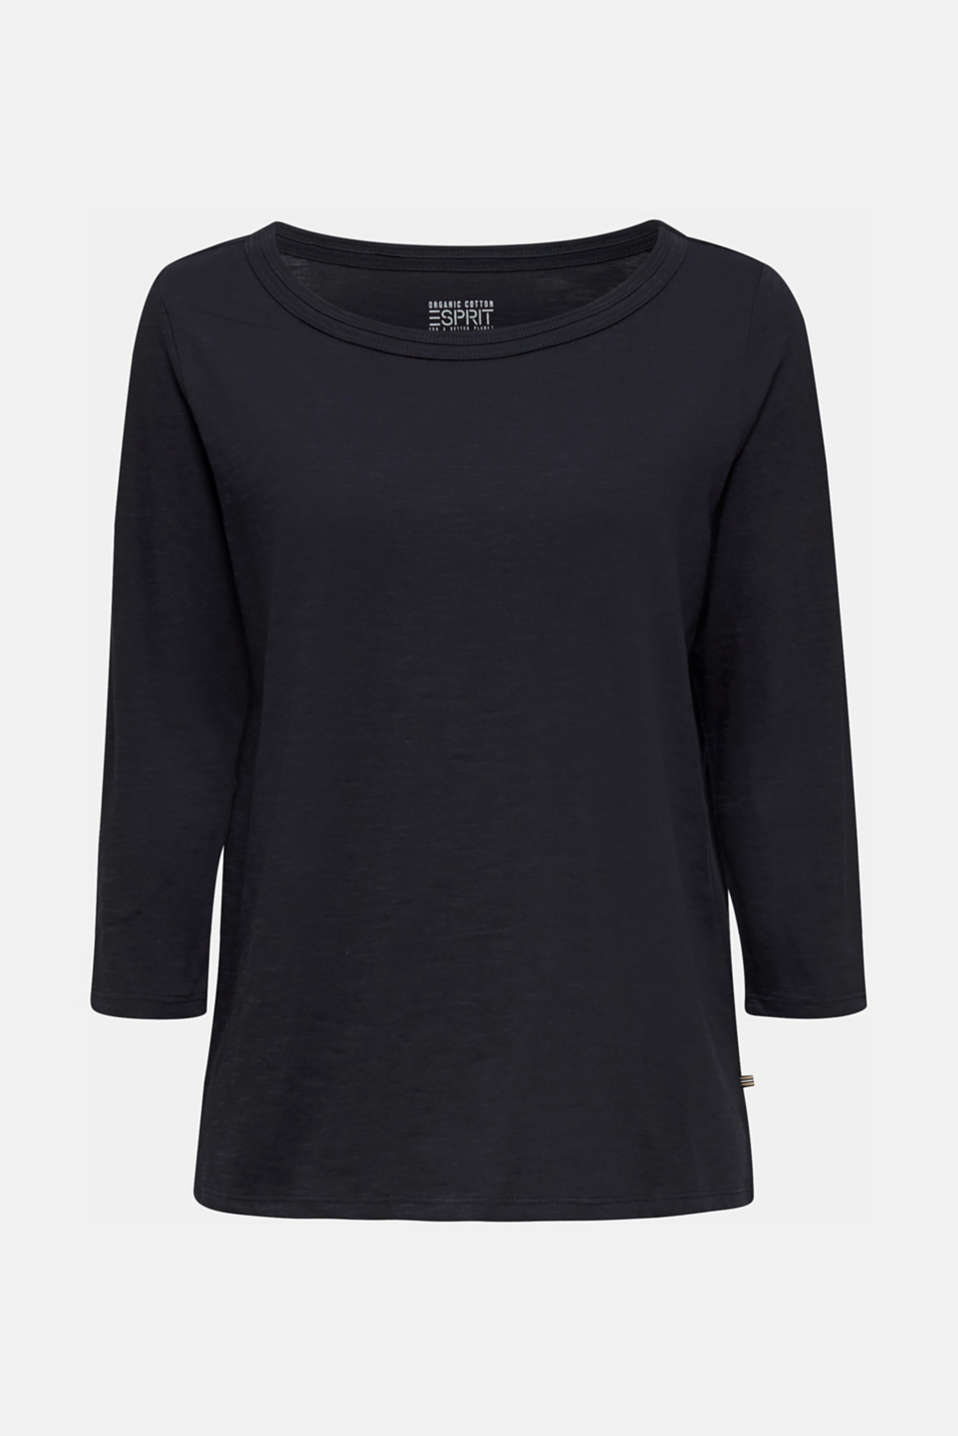 Slub top with 3/4-length sleeves, 100% cotton, BLACK, detail image number 6